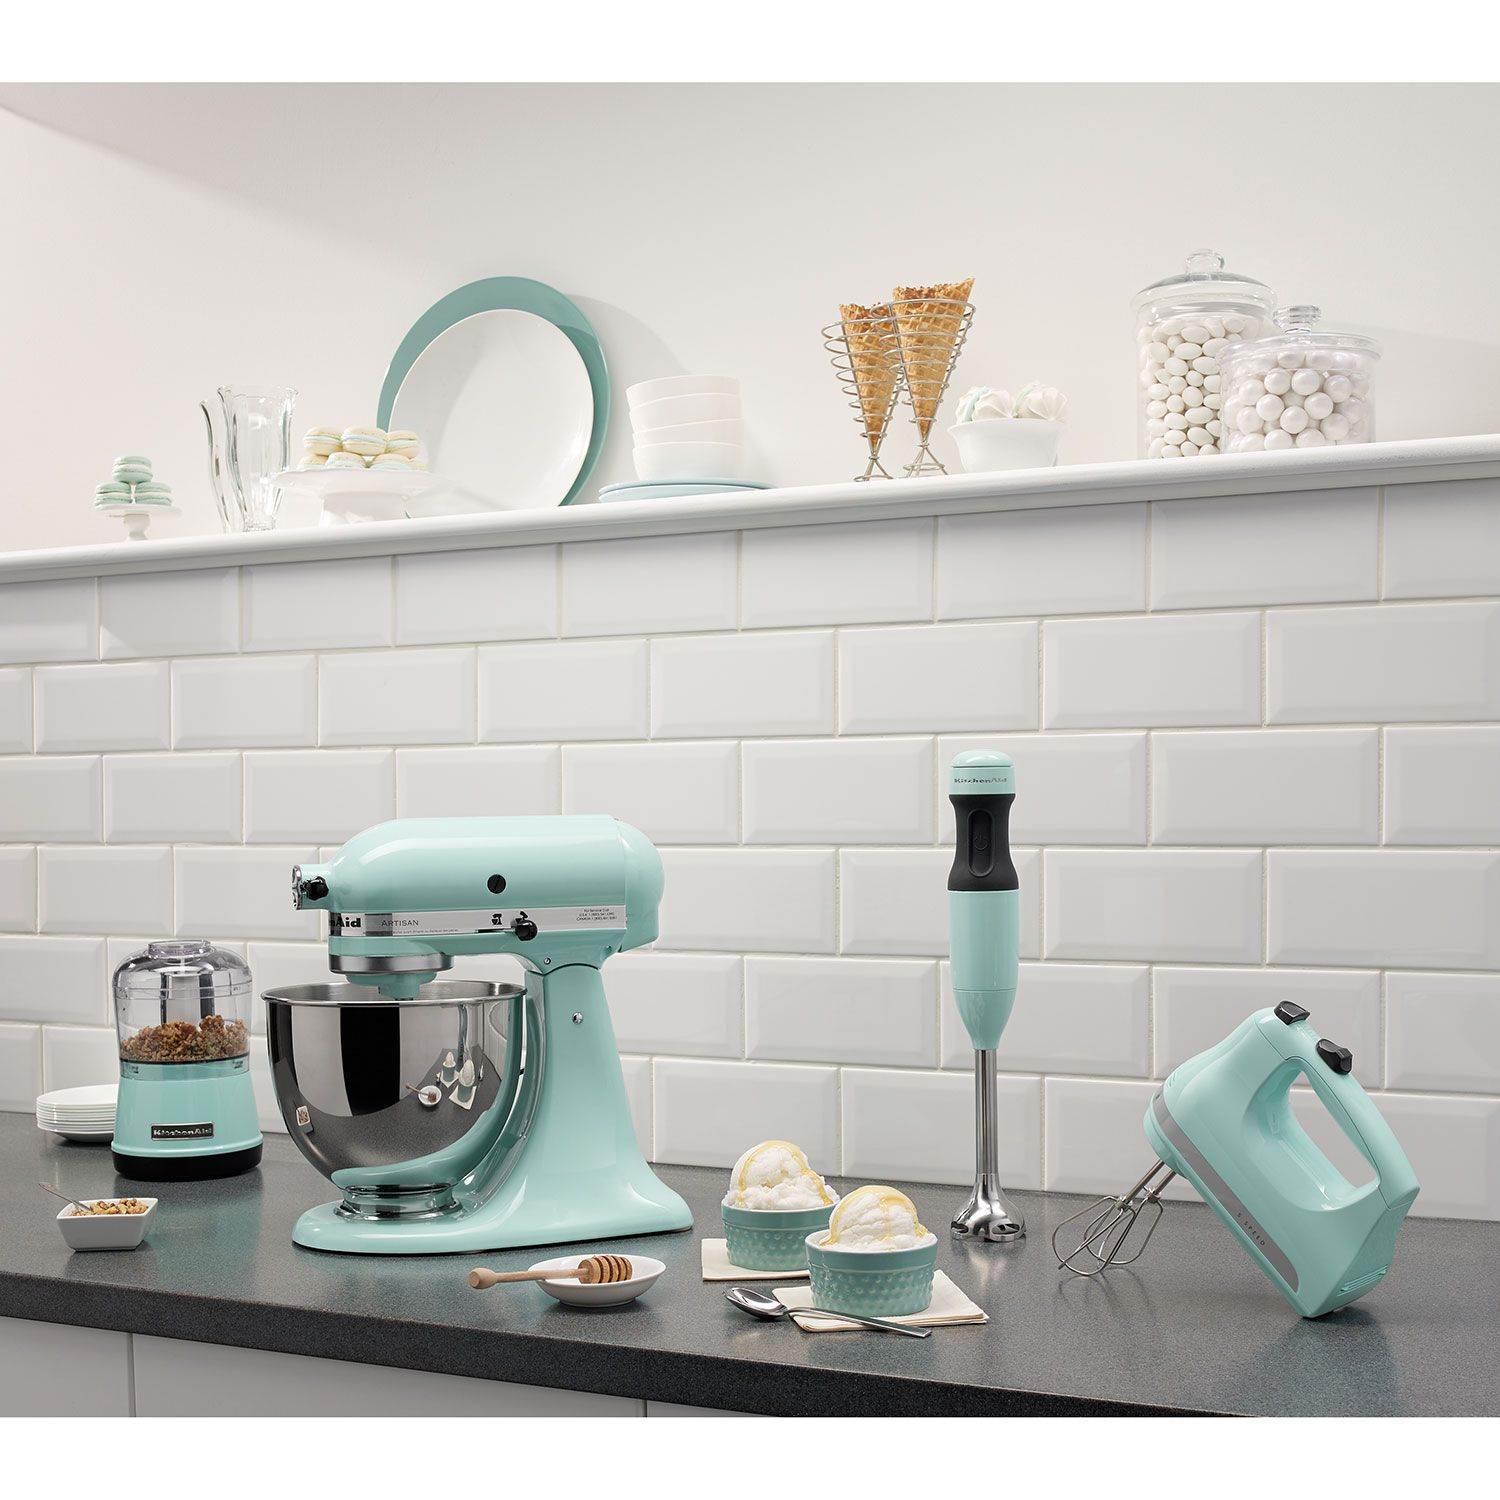 Image result for kitchenaid ice blue mixer kitchen aid